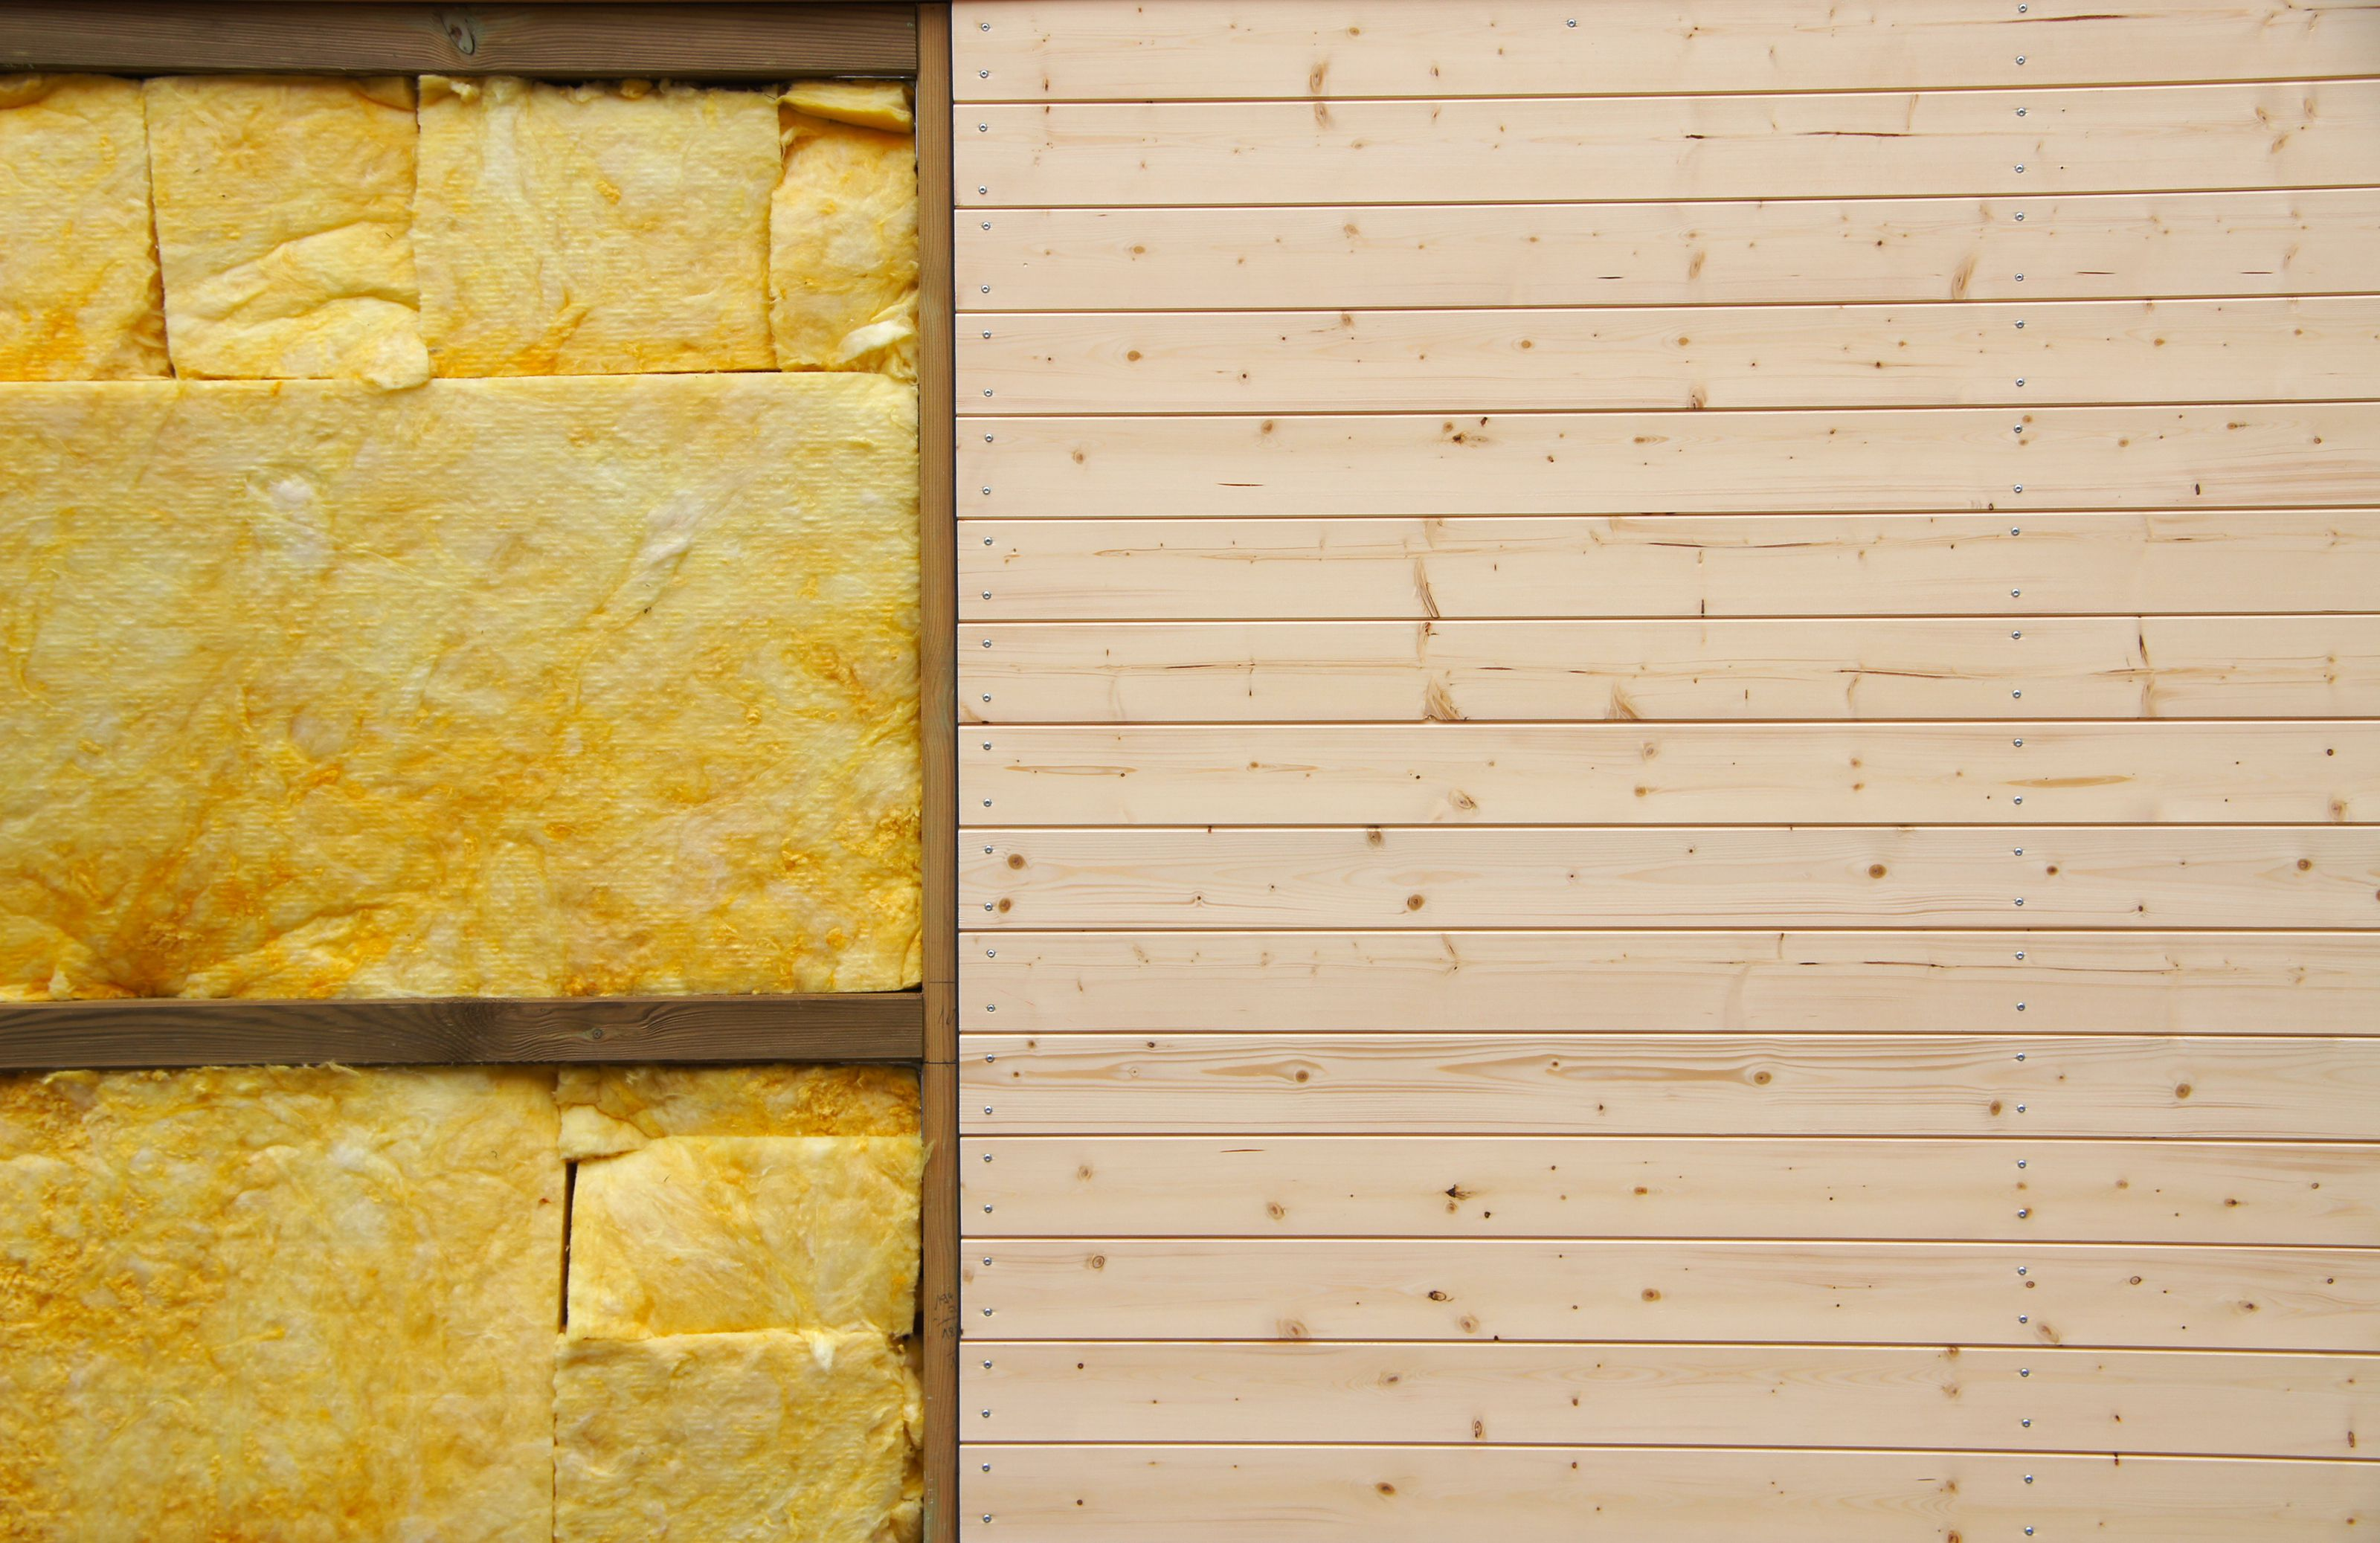 How to Add Insulation to Walls That Are Closed